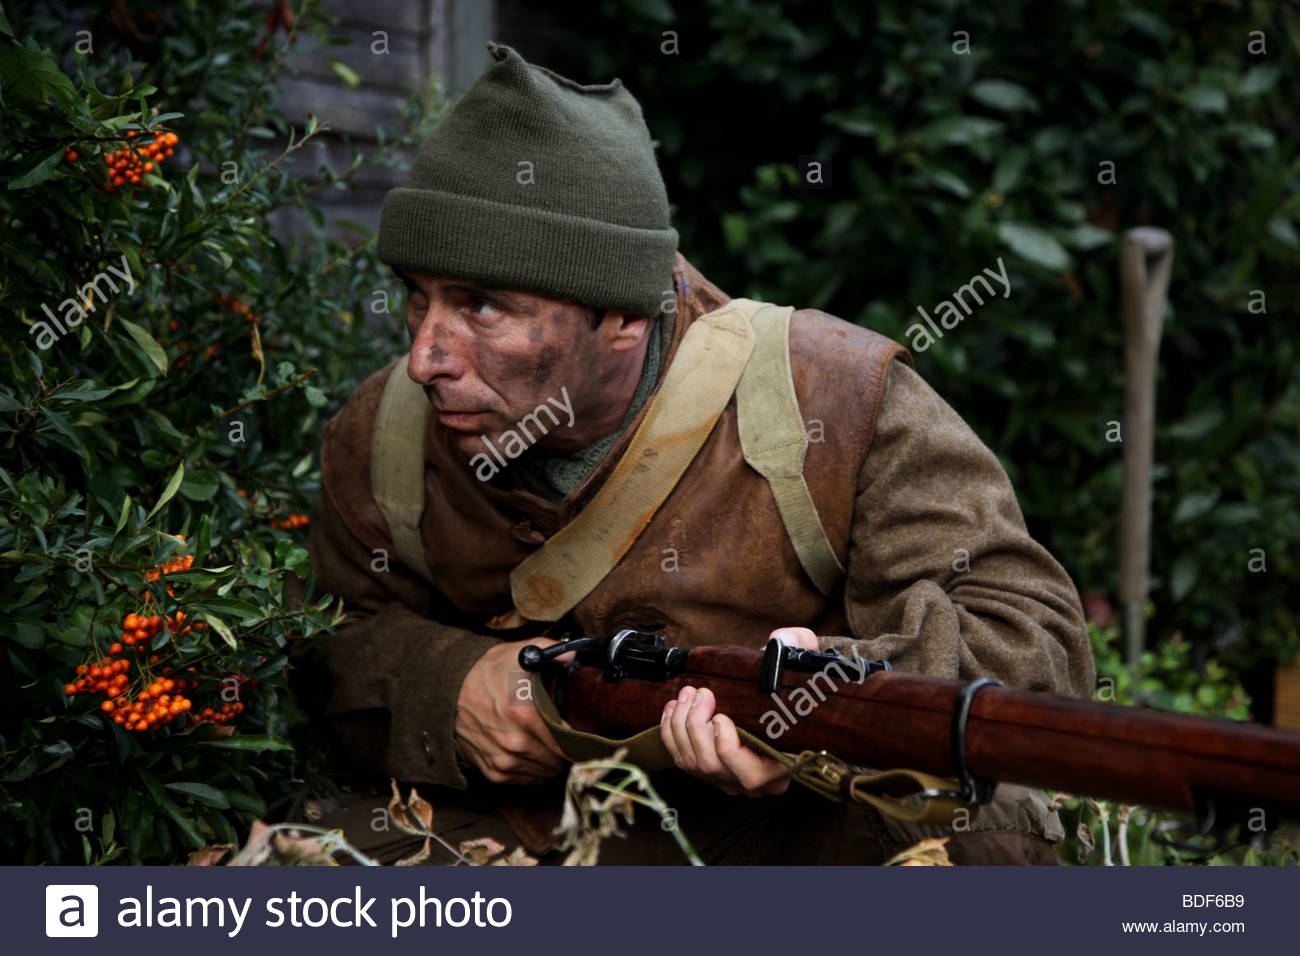 A British commando, hiding from the enemy - Stock Image